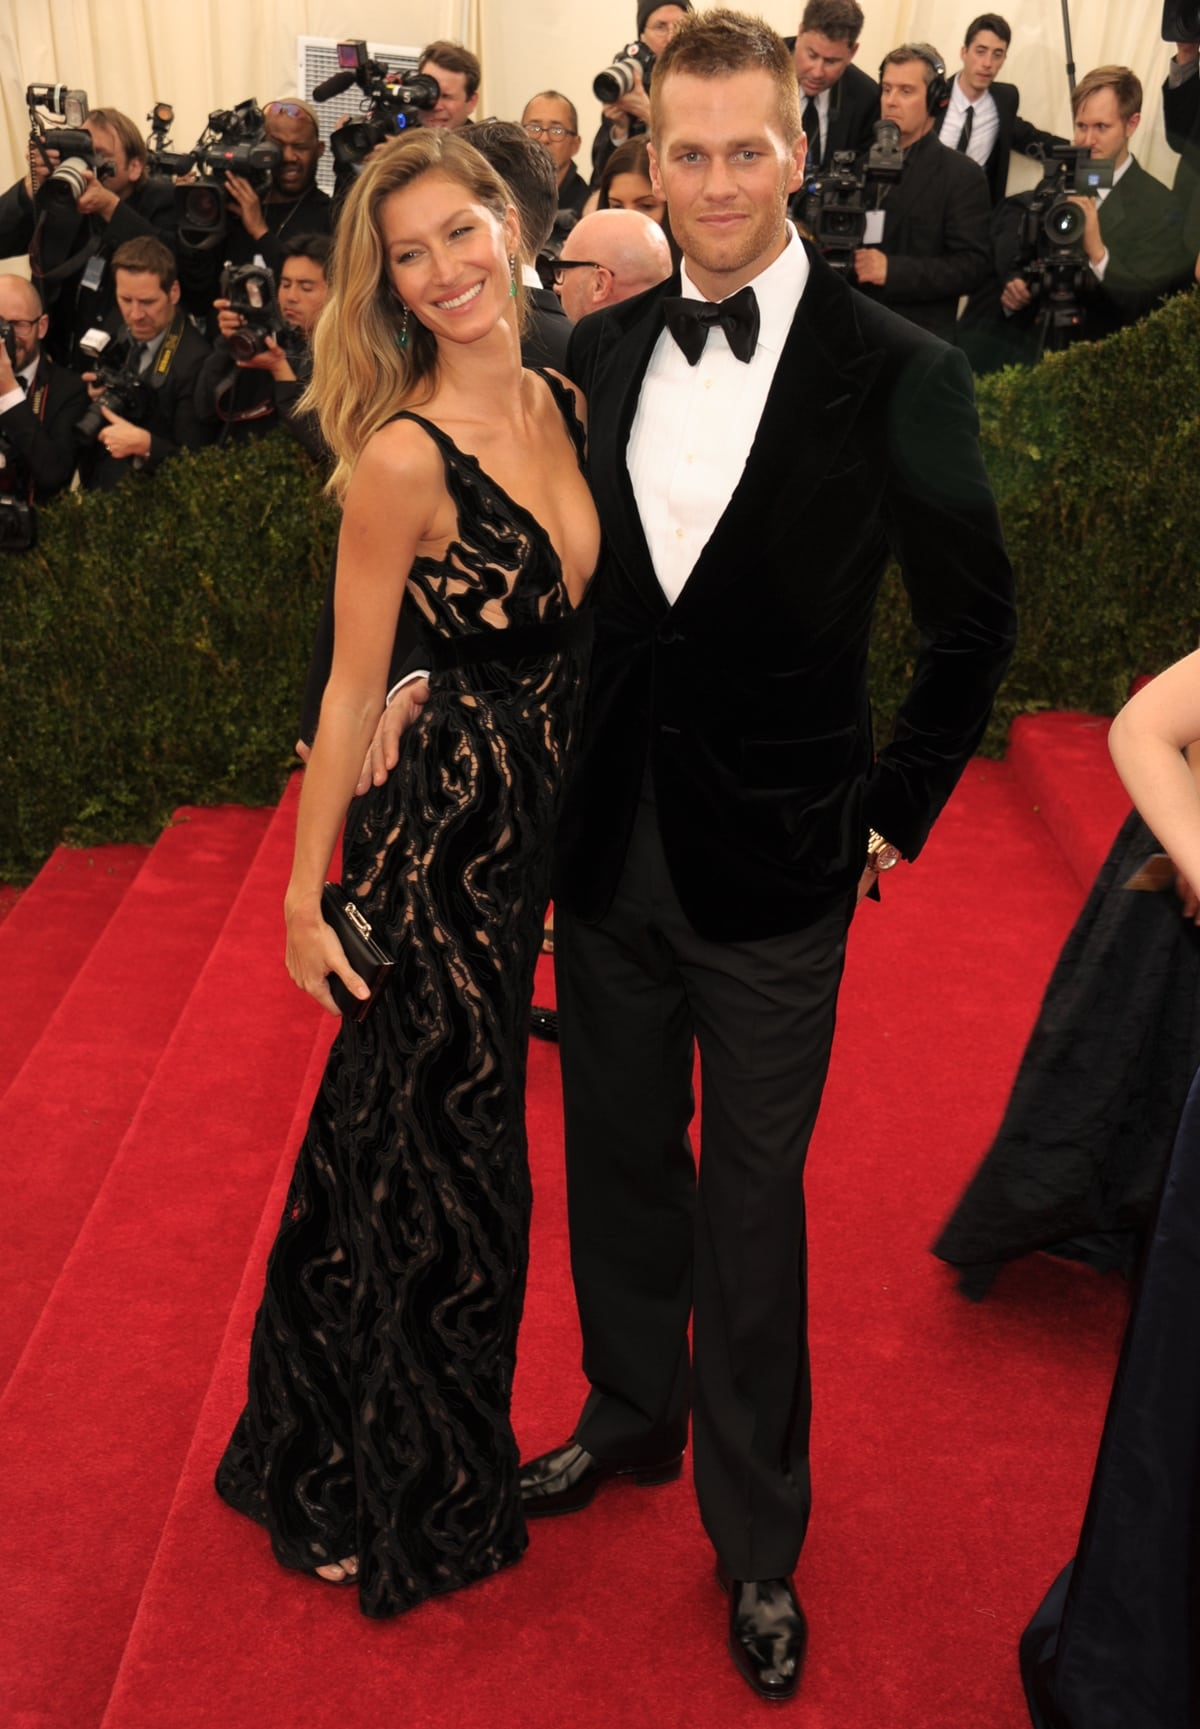 Gisele Bündchen in a plunging black velvet Balenciaga gown with Tom Brady at the 2014 Met Gala